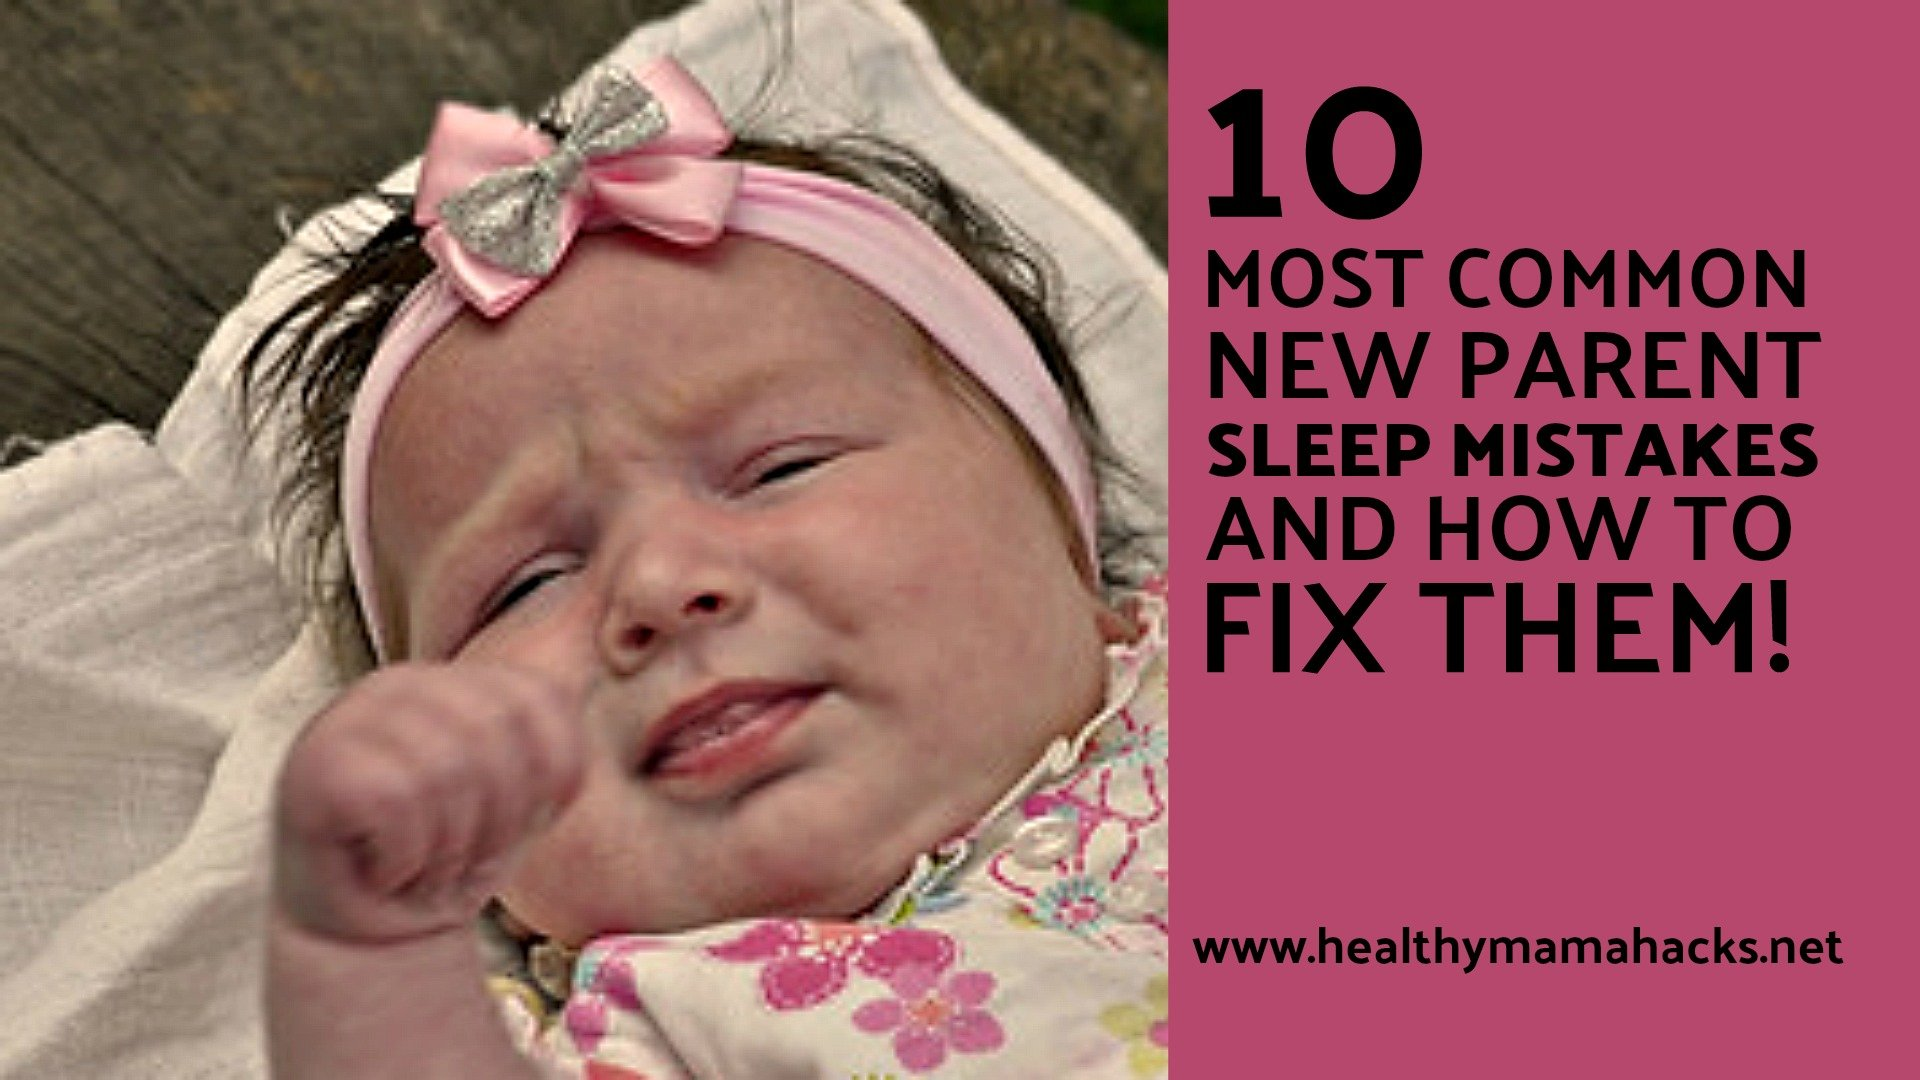 Most common baby sleep mistakes that new parents make and how to fix them!